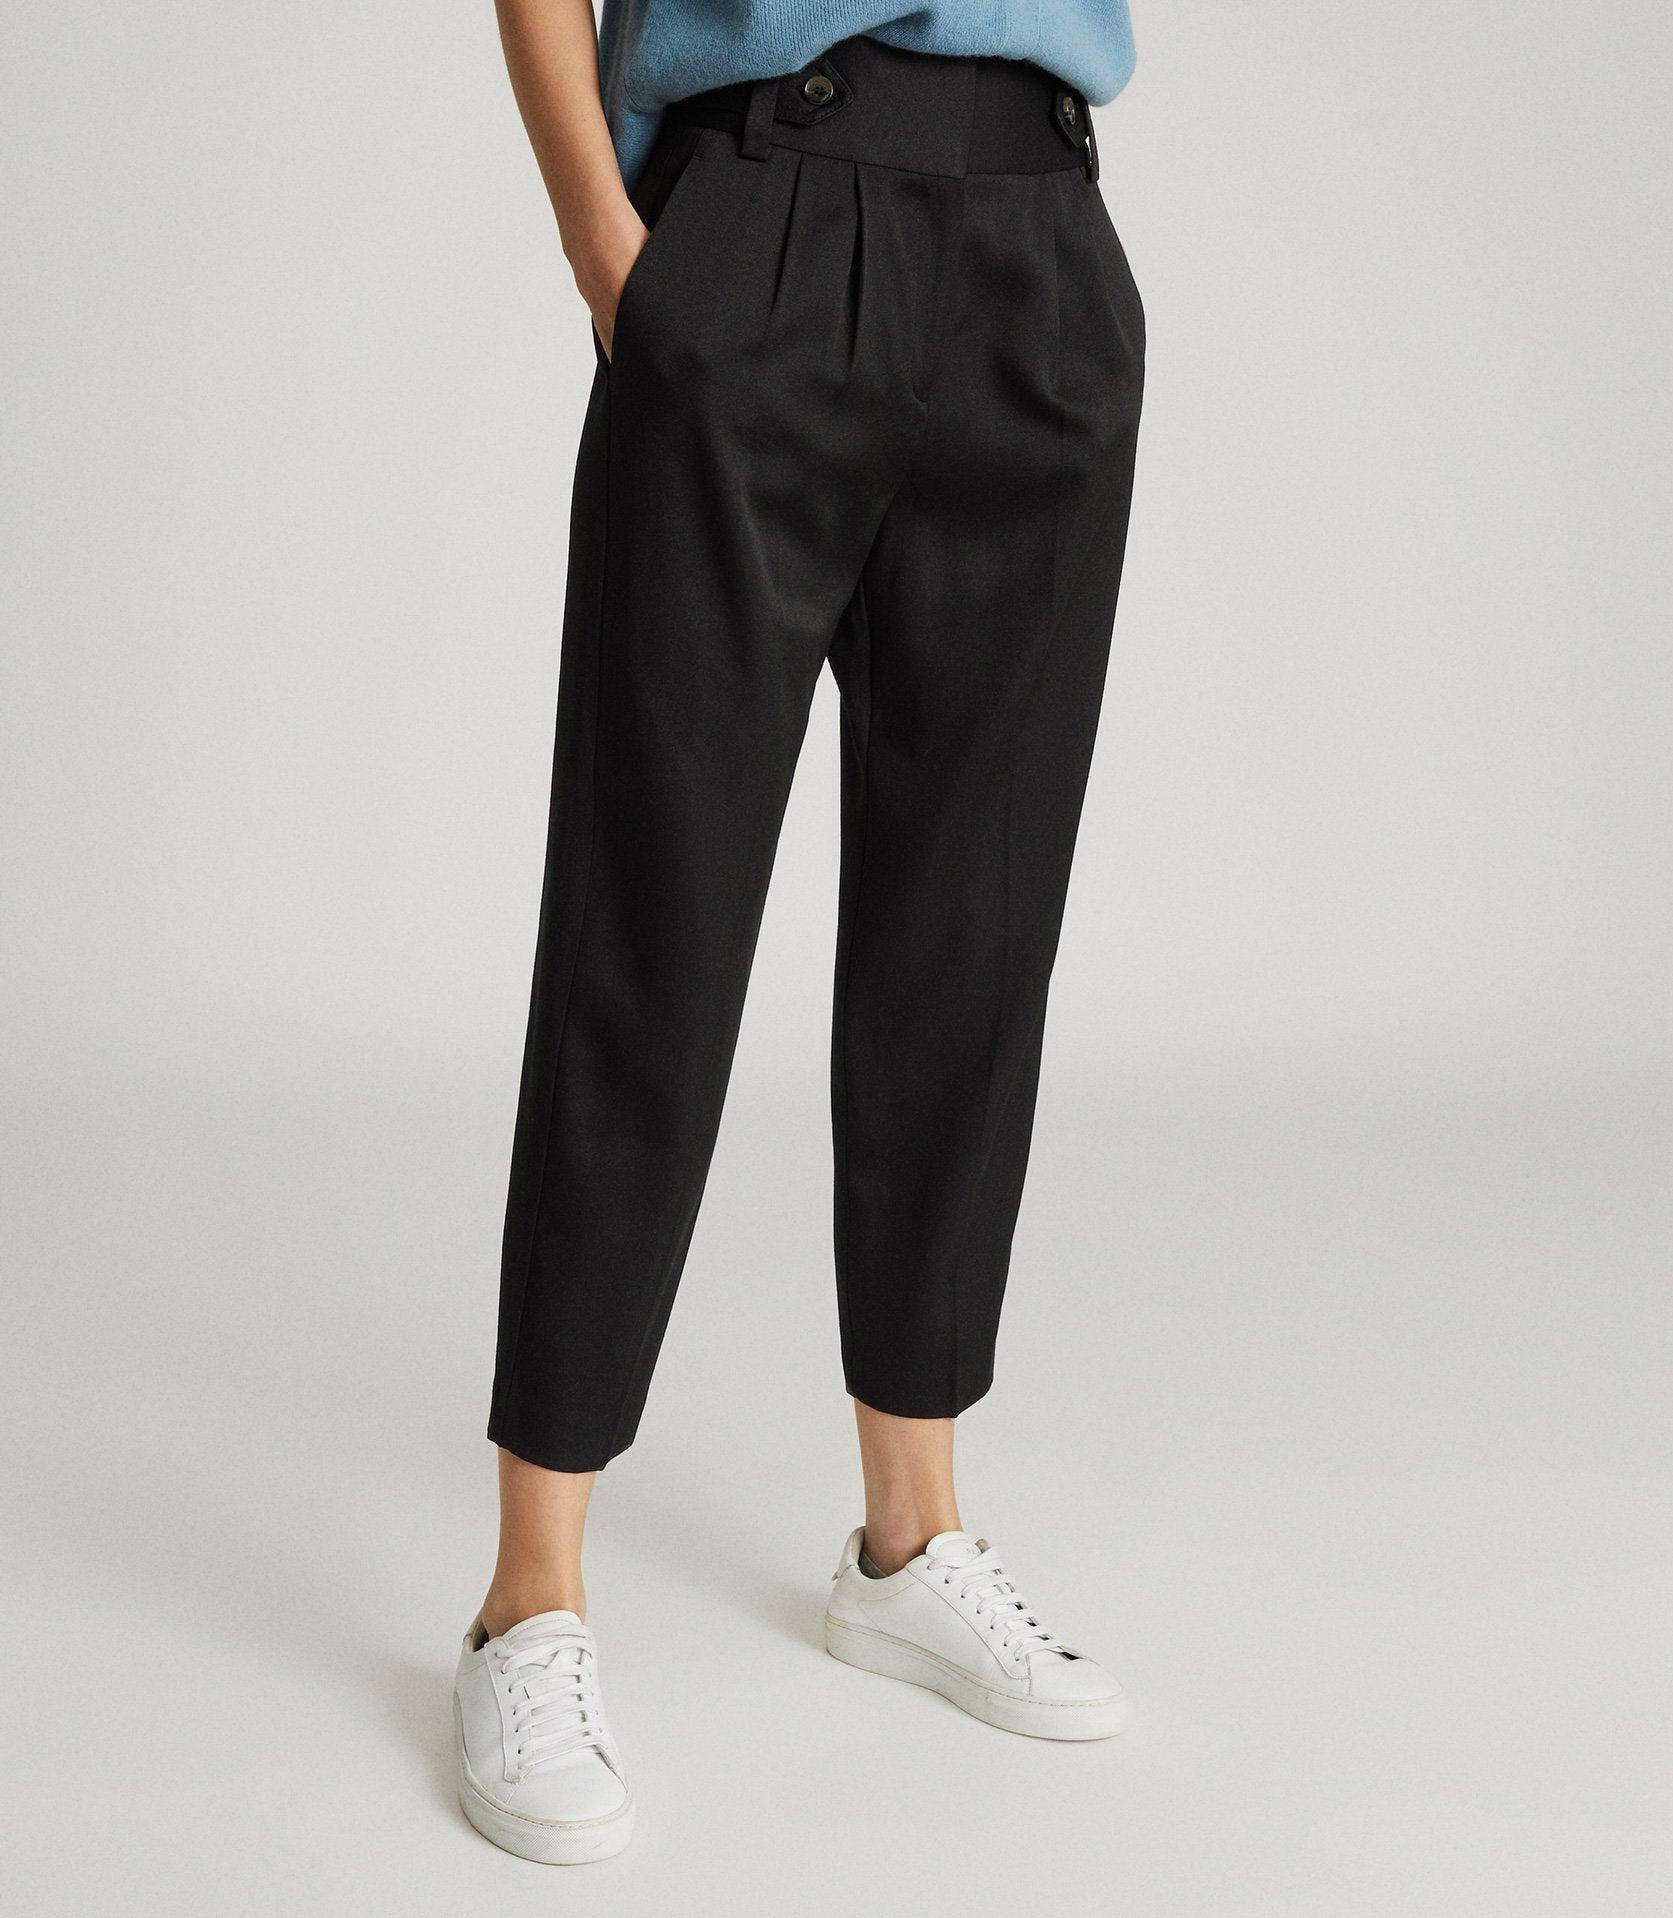 STANTON - CROPPED TAPERED PANTS 1